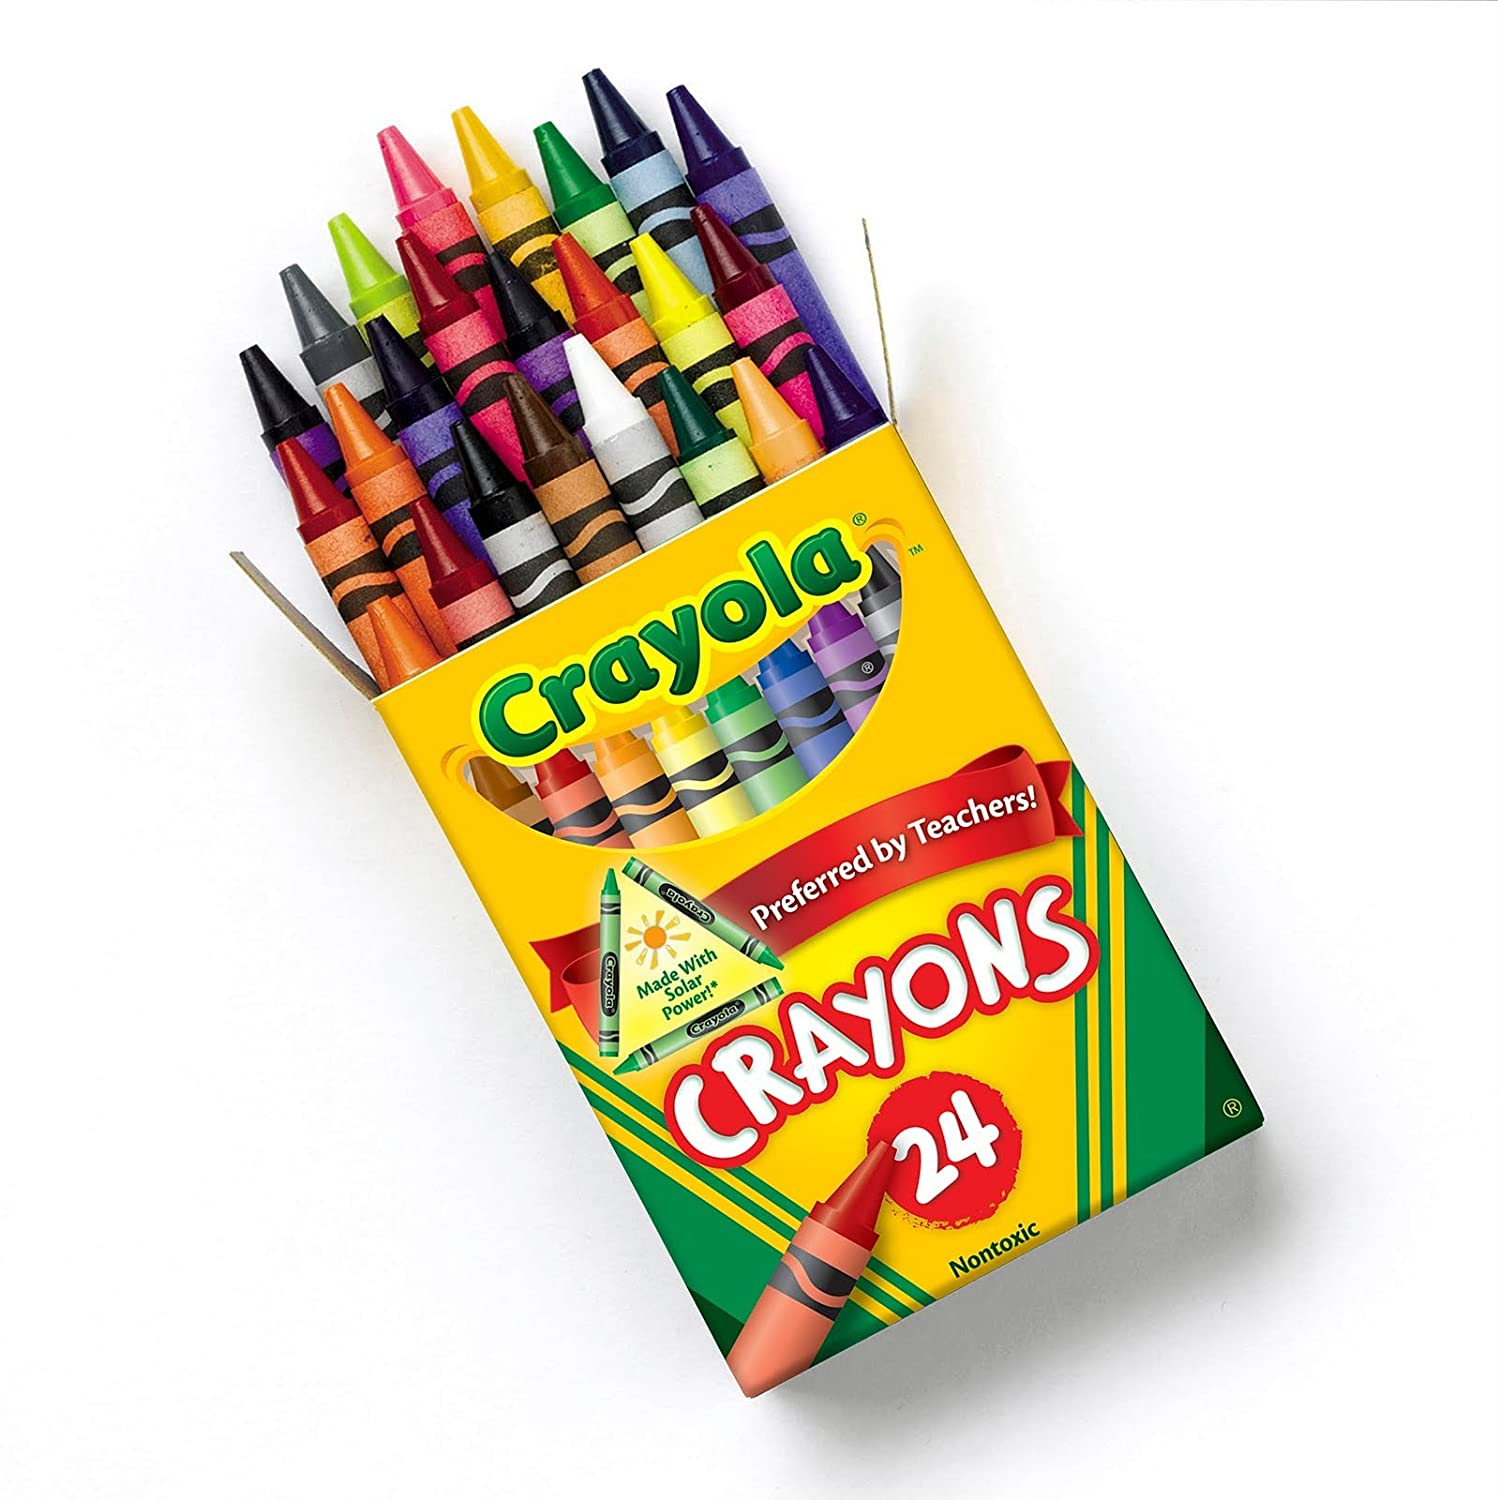 amazoncom crayola classic color pack crayons 24 count pack of 4 artists crayons office products